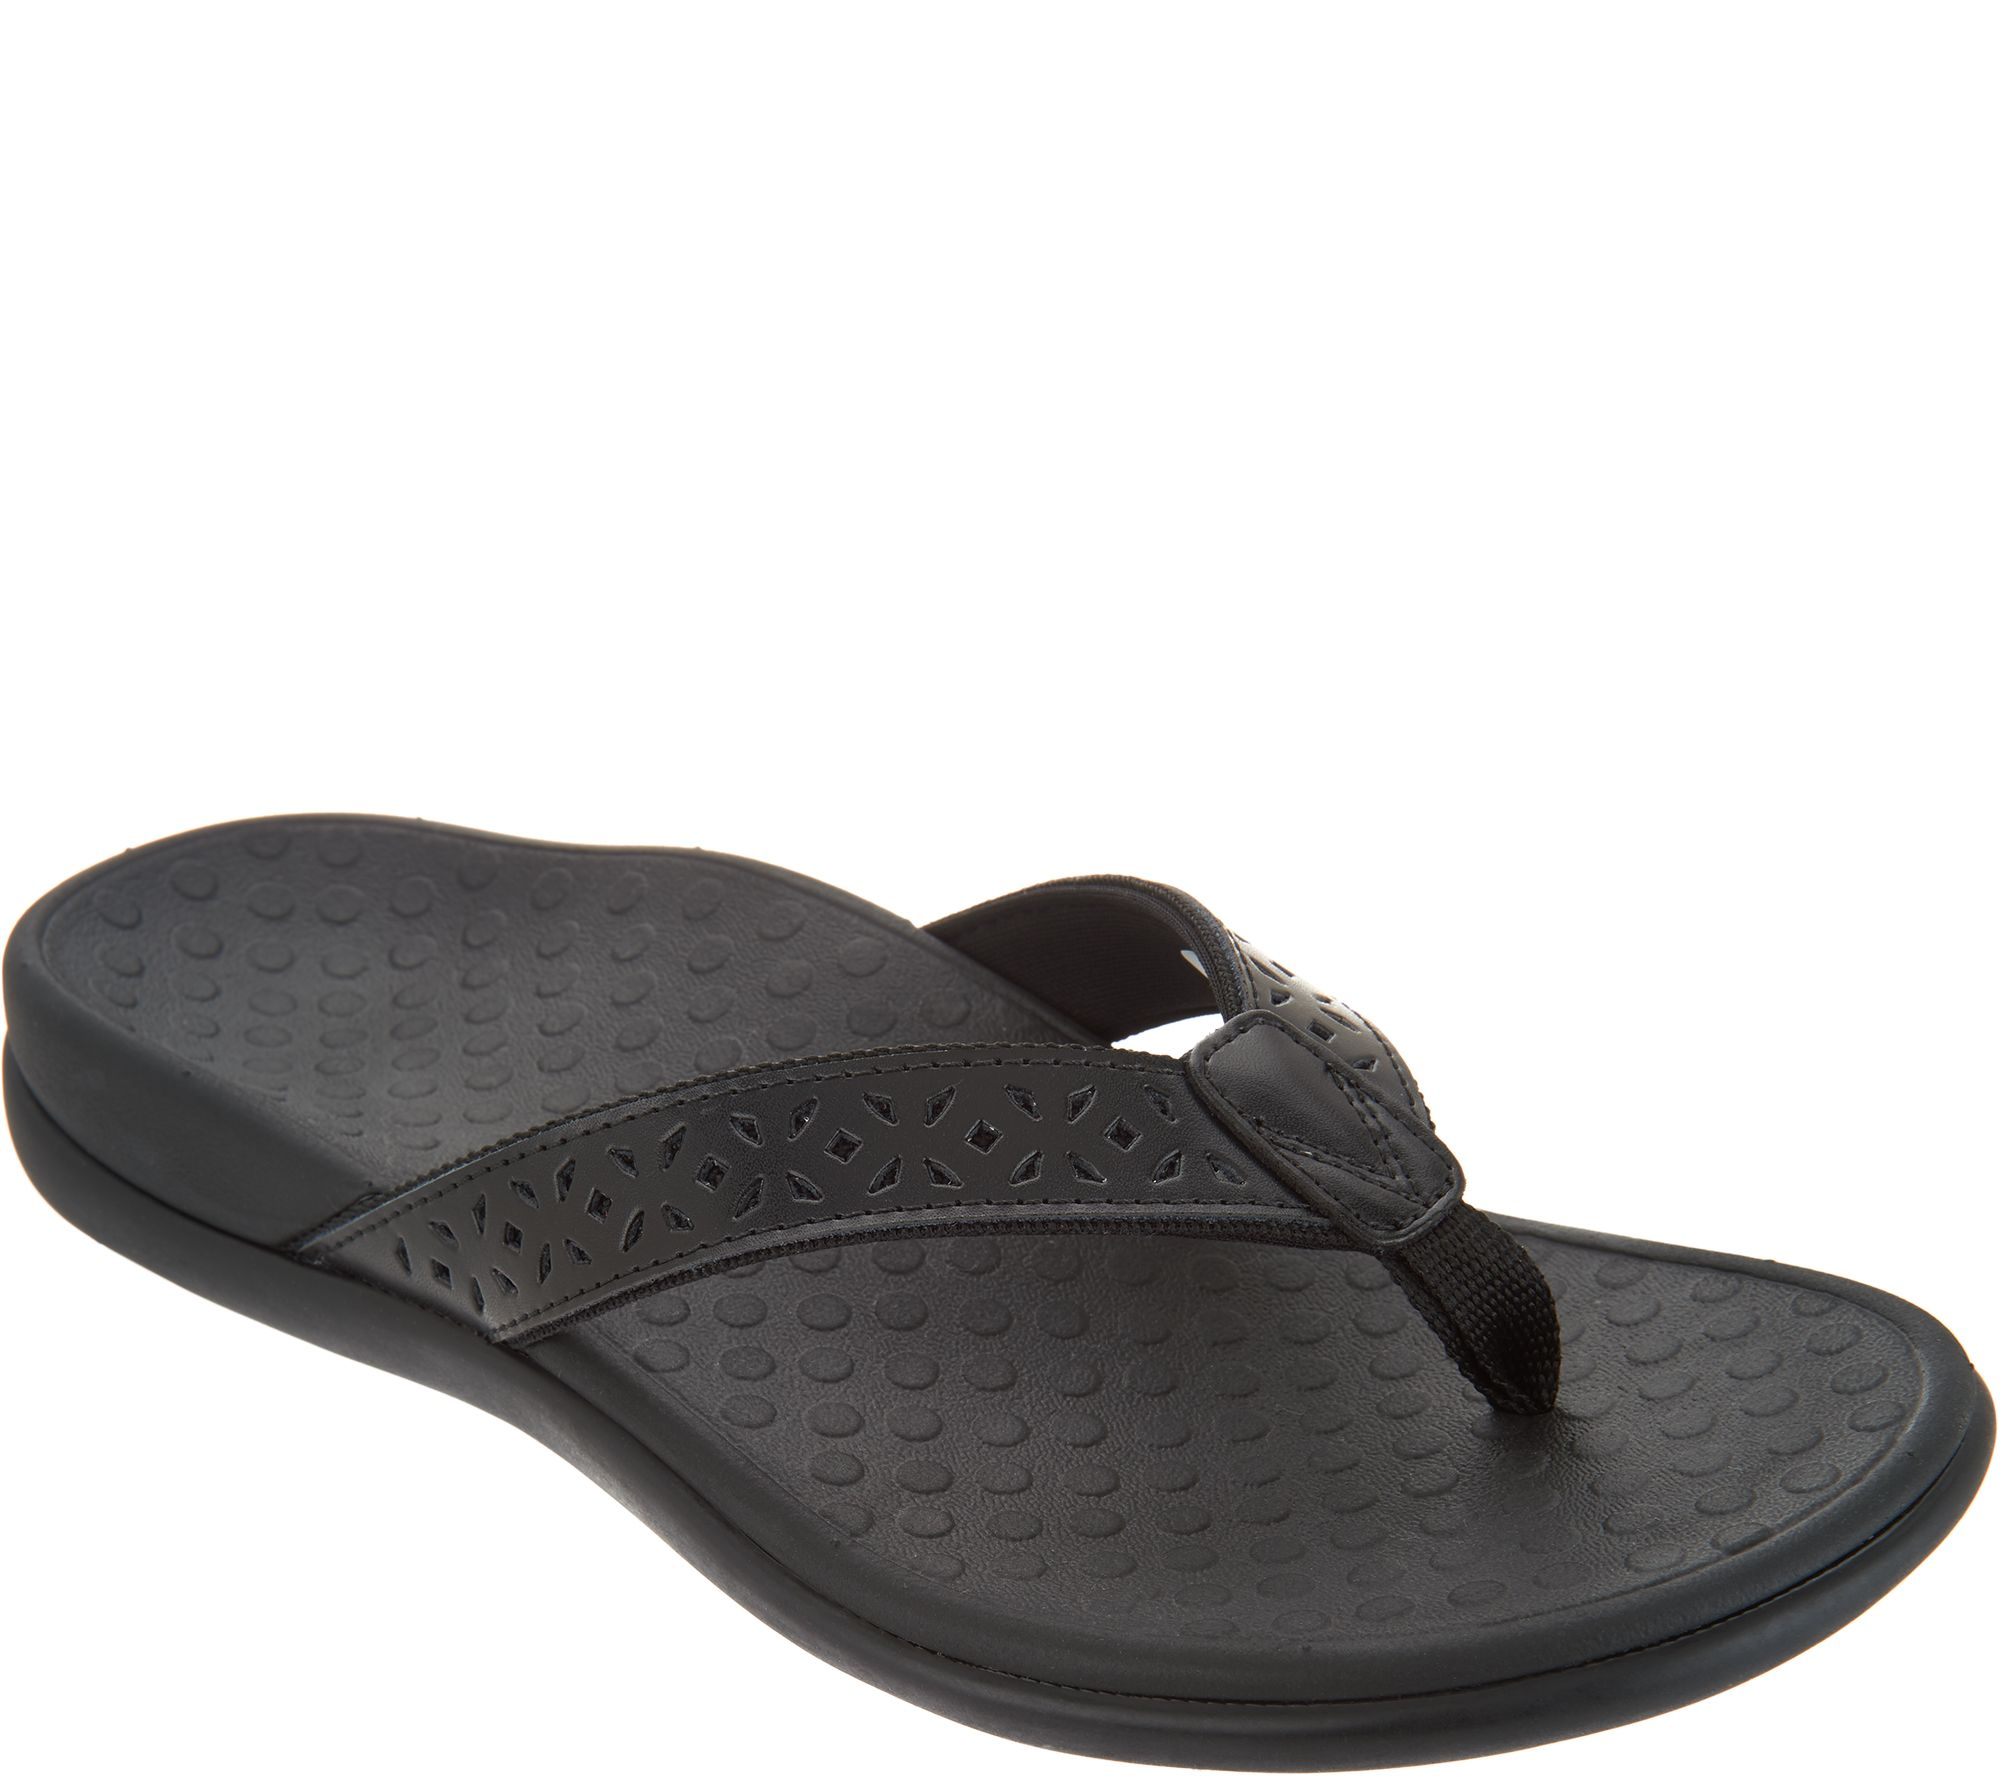 a029d1228 Vionic Leather Thong Sandals - Tide Anniversary - Page 1 — QVC.com